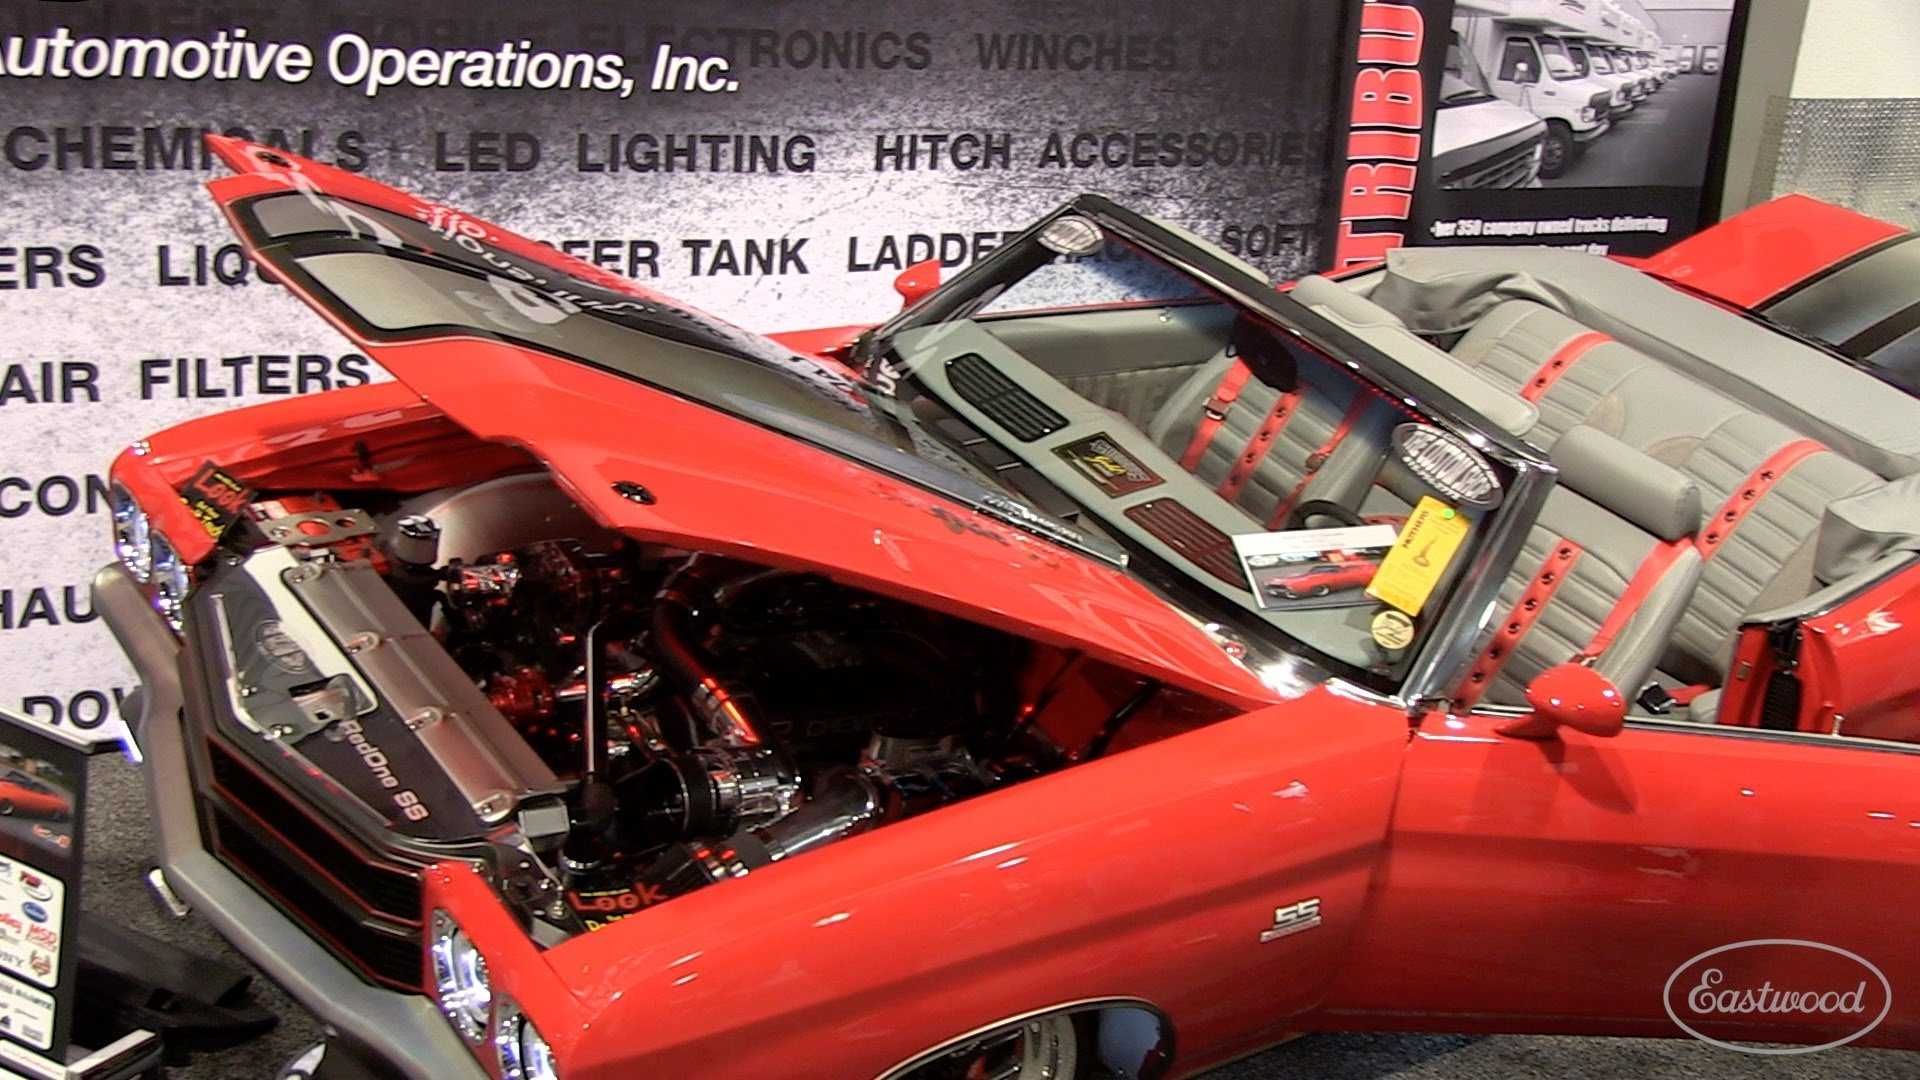 1,000 hp Supercharged 1970 Chevelle Convertible! [572 GM Crate]